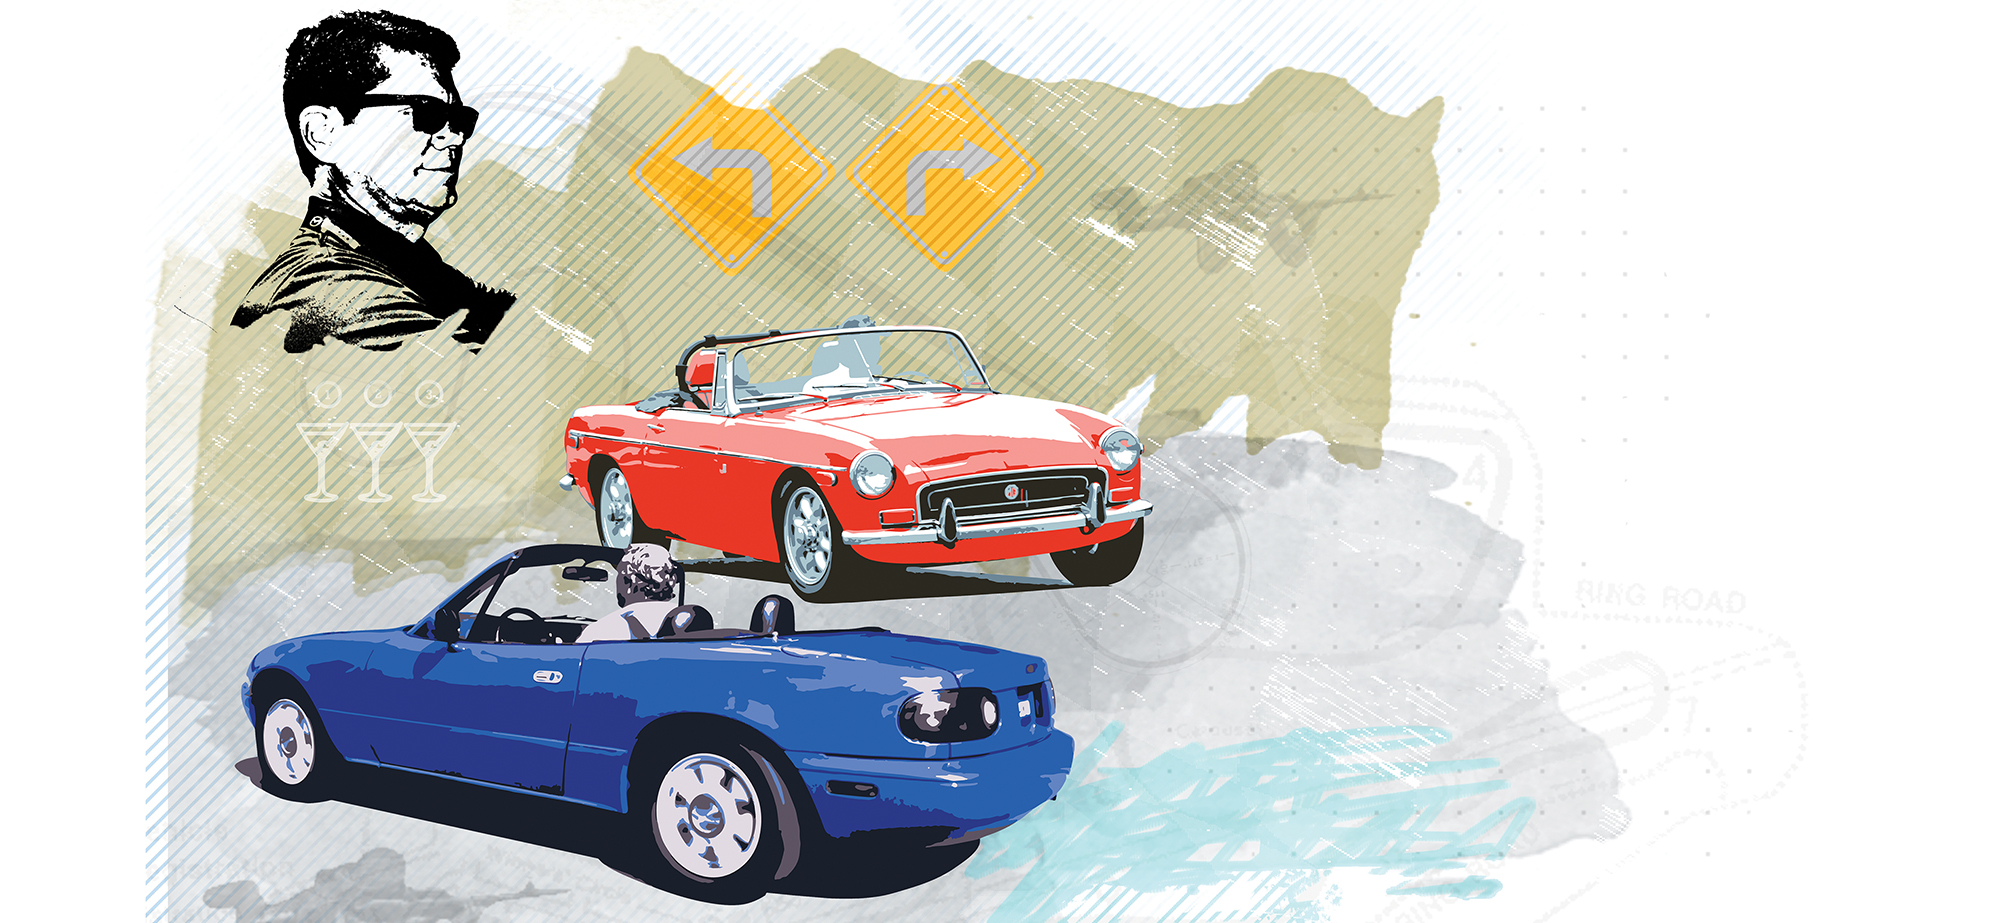 what makes the perfect sports car? articles grassroots motorsports